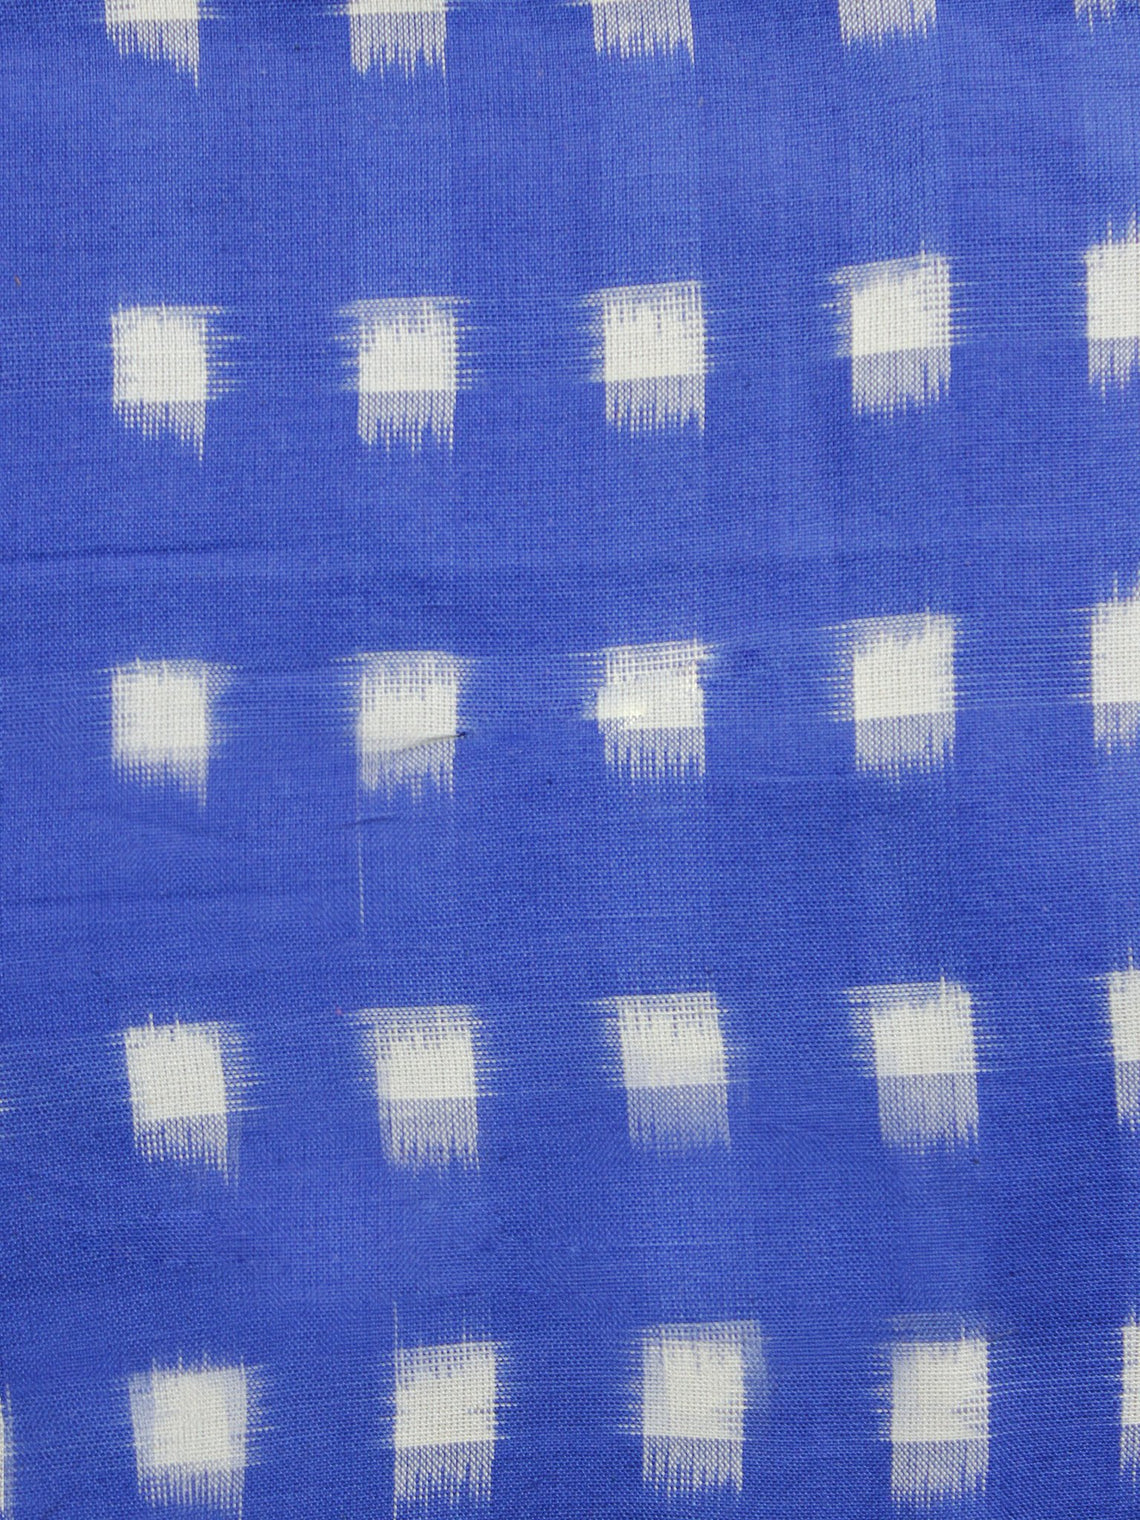 Blue White Pochampally Hand Woven Double Ikat Fabric Per Meter - F002F1055